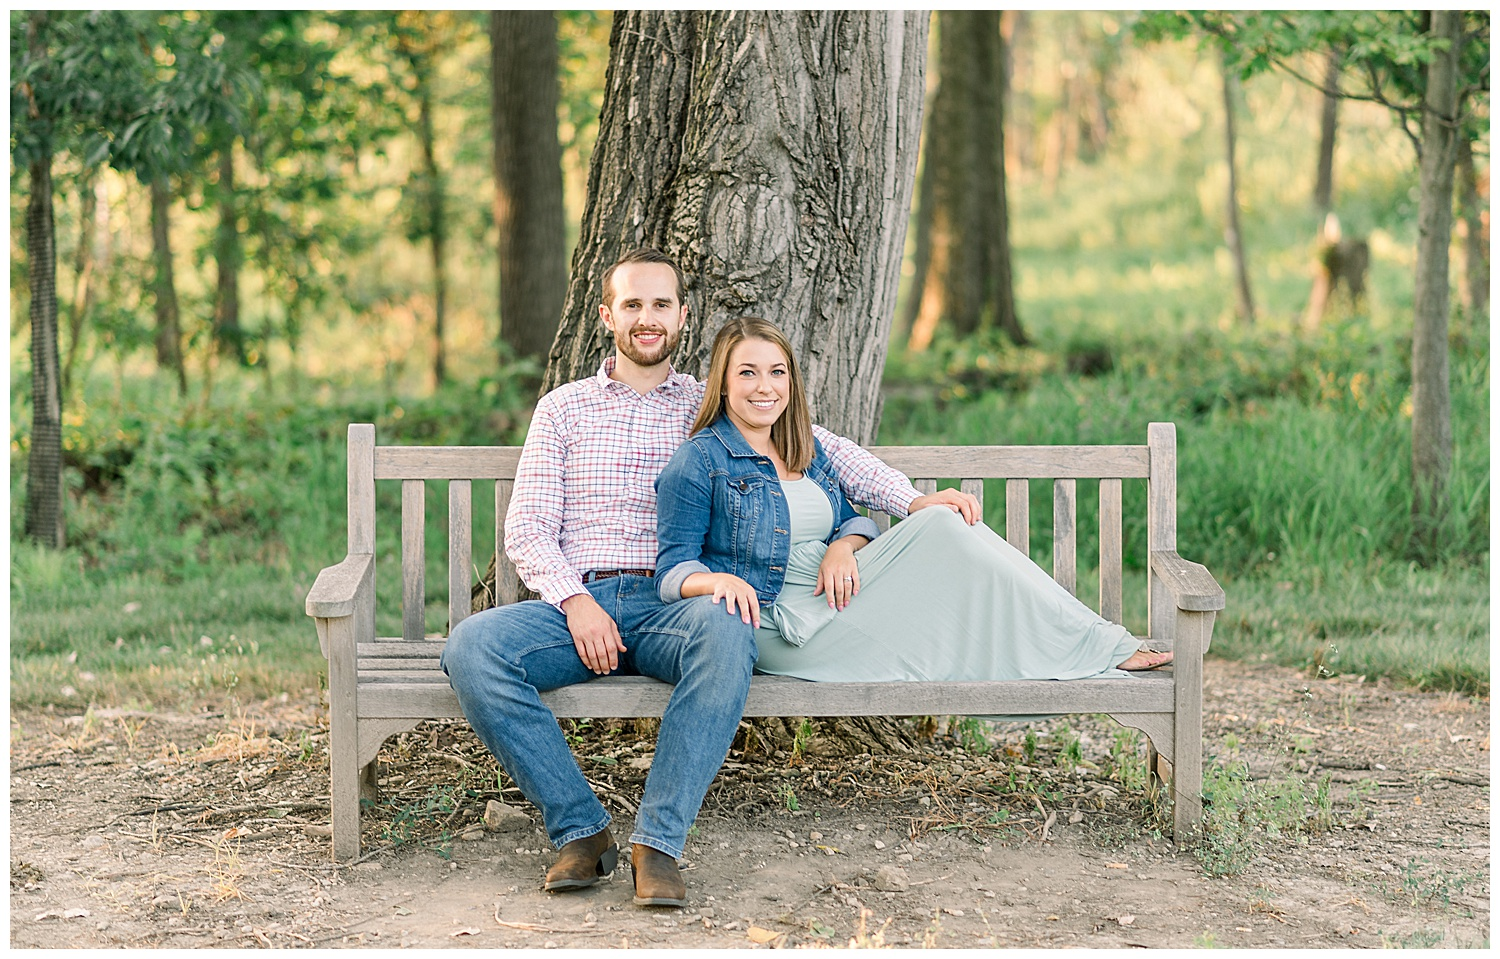 Cox_Arboretum_Anniversary_Session_Miamisburg_Ohio_Cassandra_Janina_Photography_Ohio_Wedding_Photographer_0269.jpg